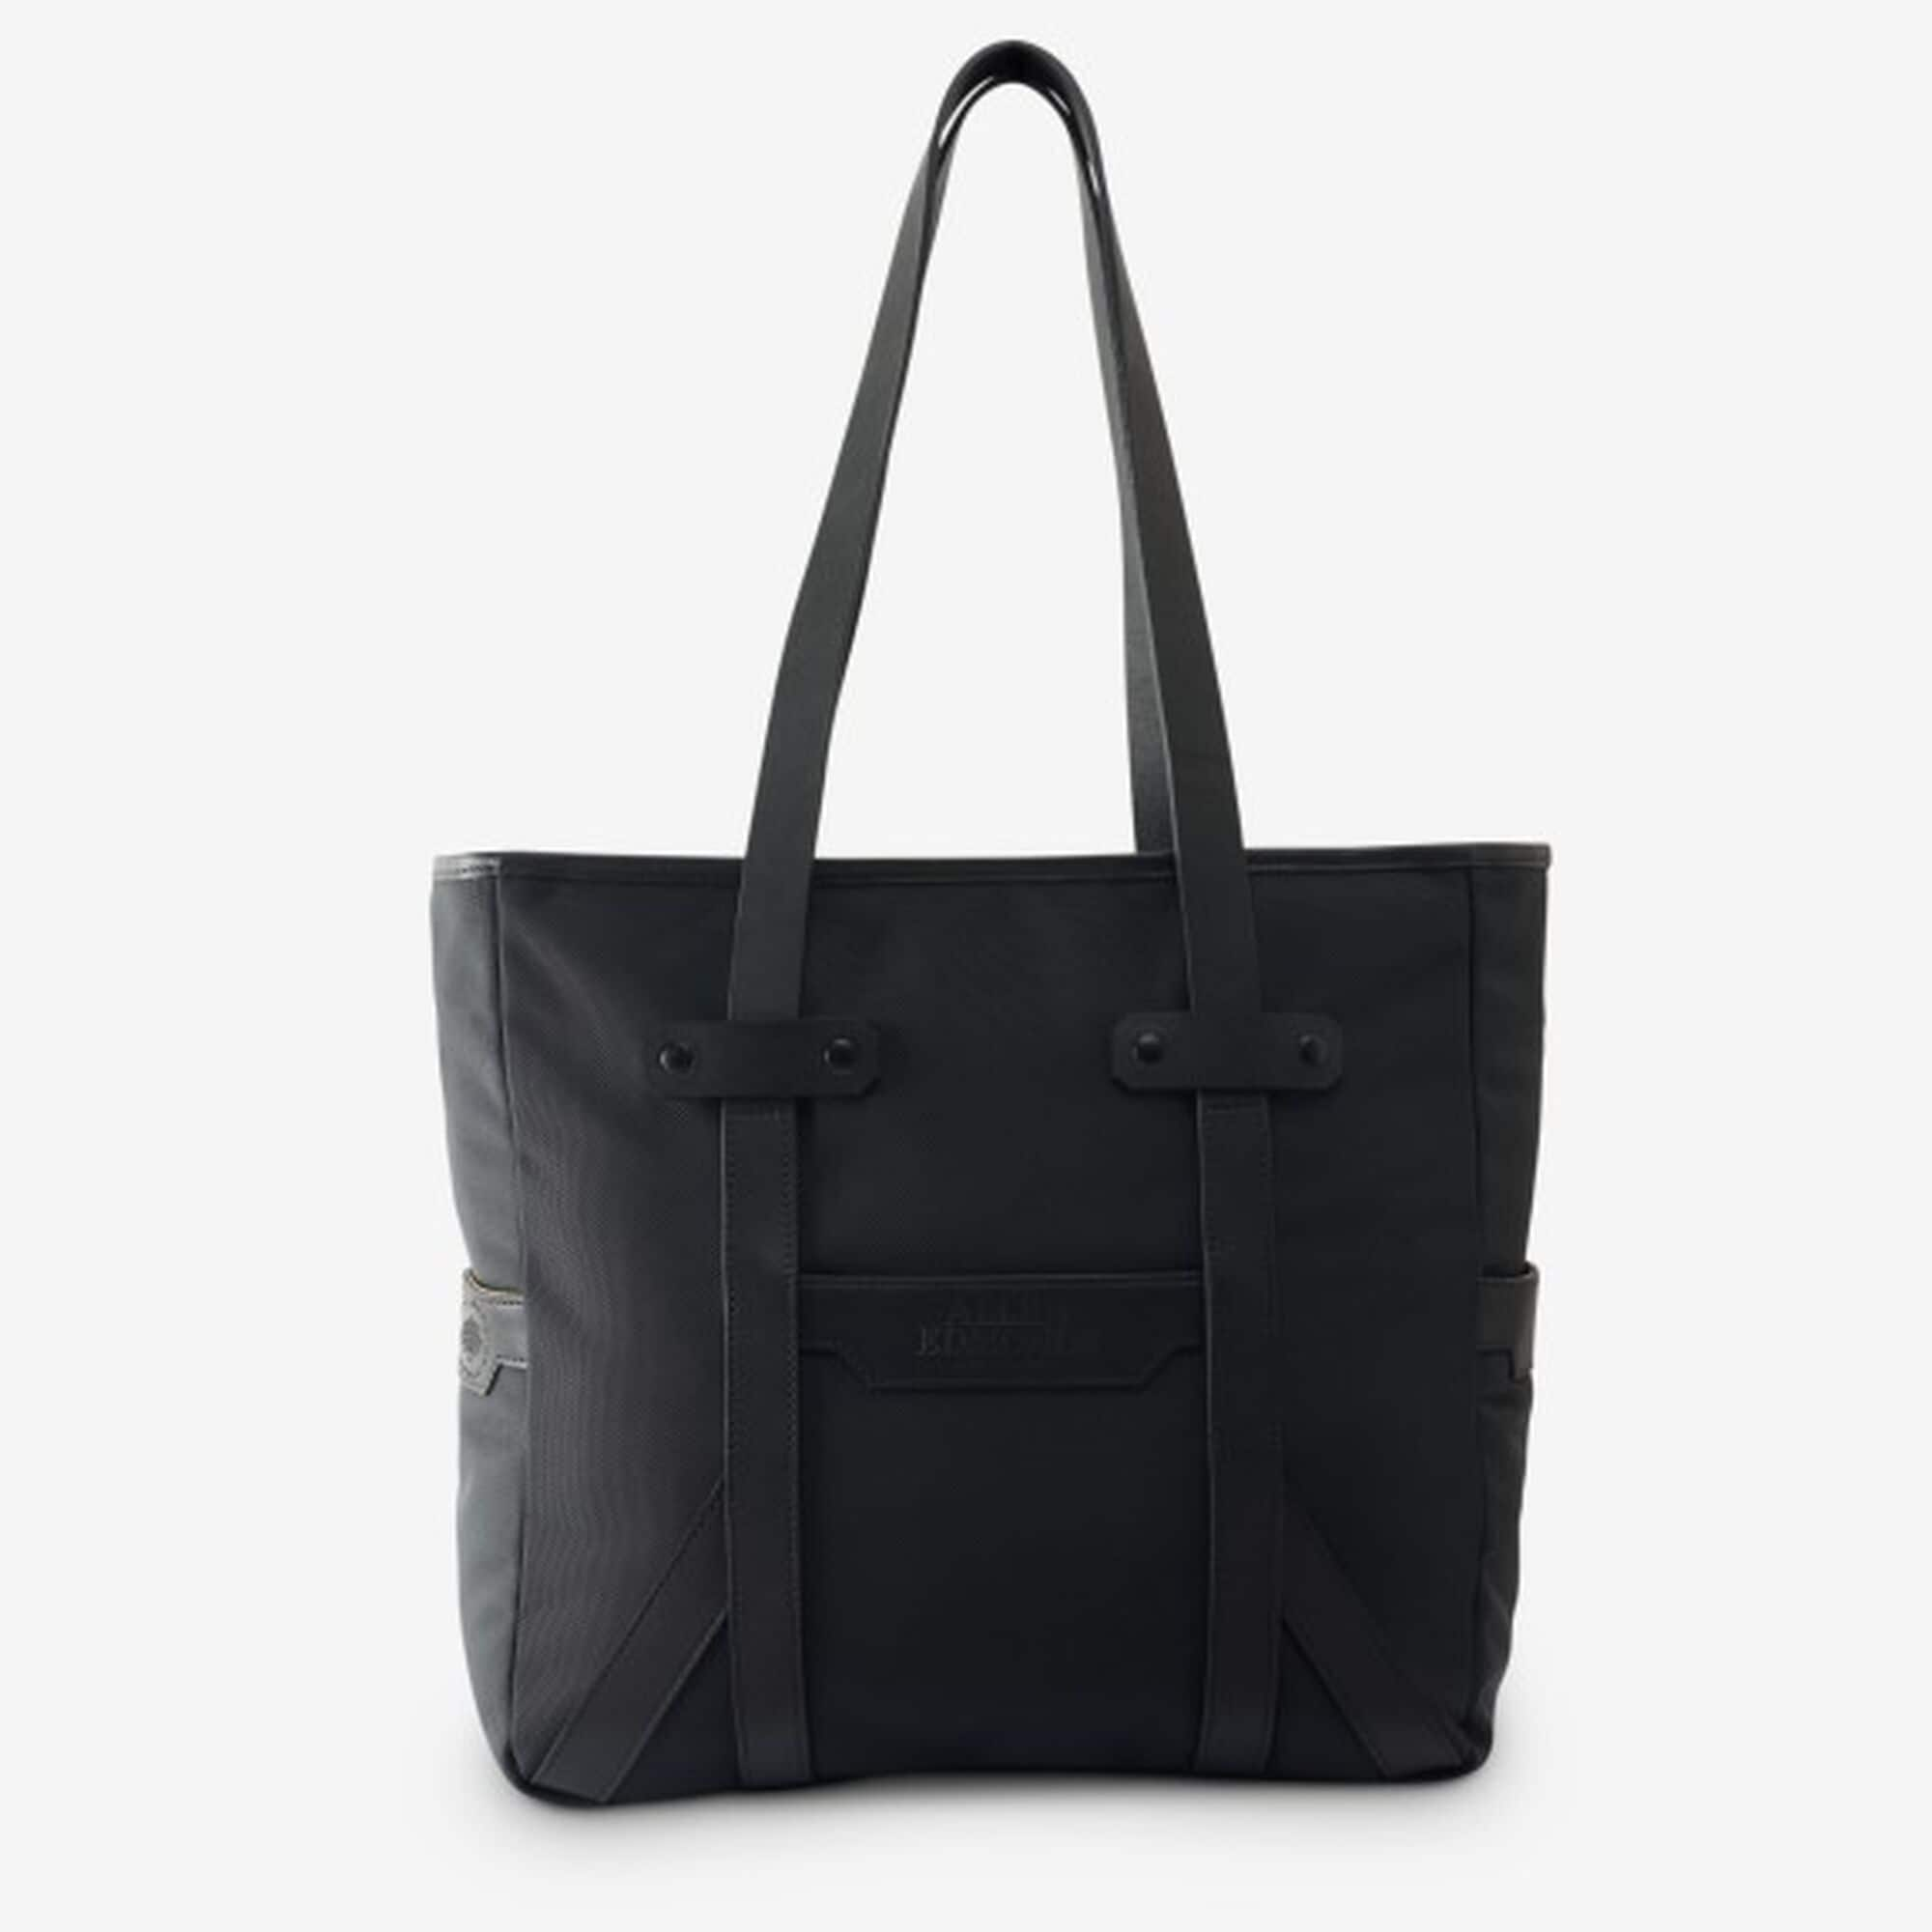 Allen Edmonds Outpost Twill Tote Bag by Korchmar $79.96